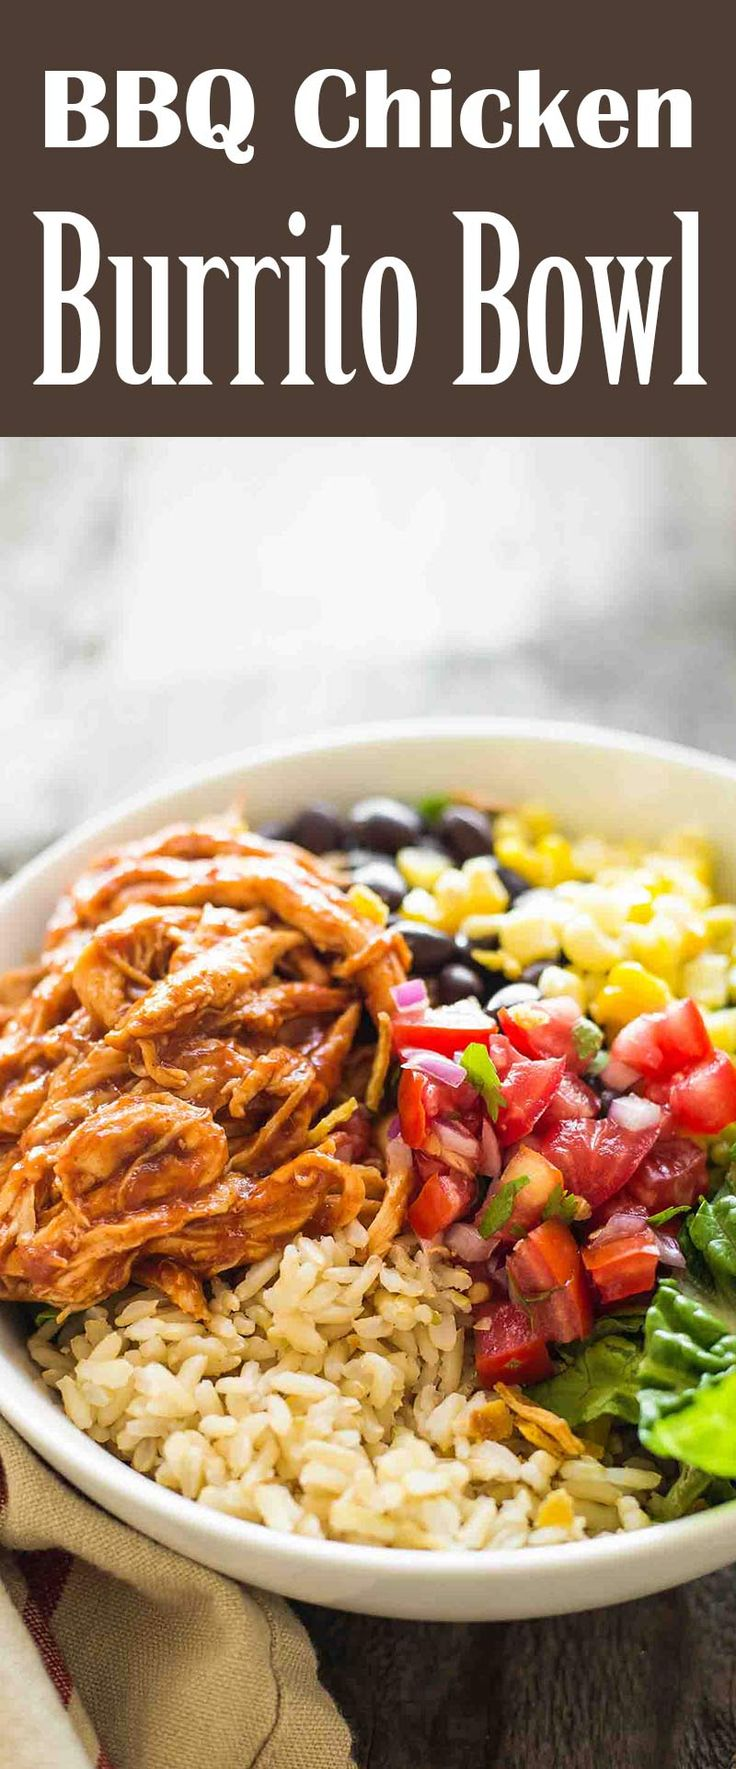 Make-ahead BBQ Chicken Burrito Bowl! Make everything on Sunday so lunches and weeknight meals are ready in a flash. Perfect for when you have a busy week ahead.